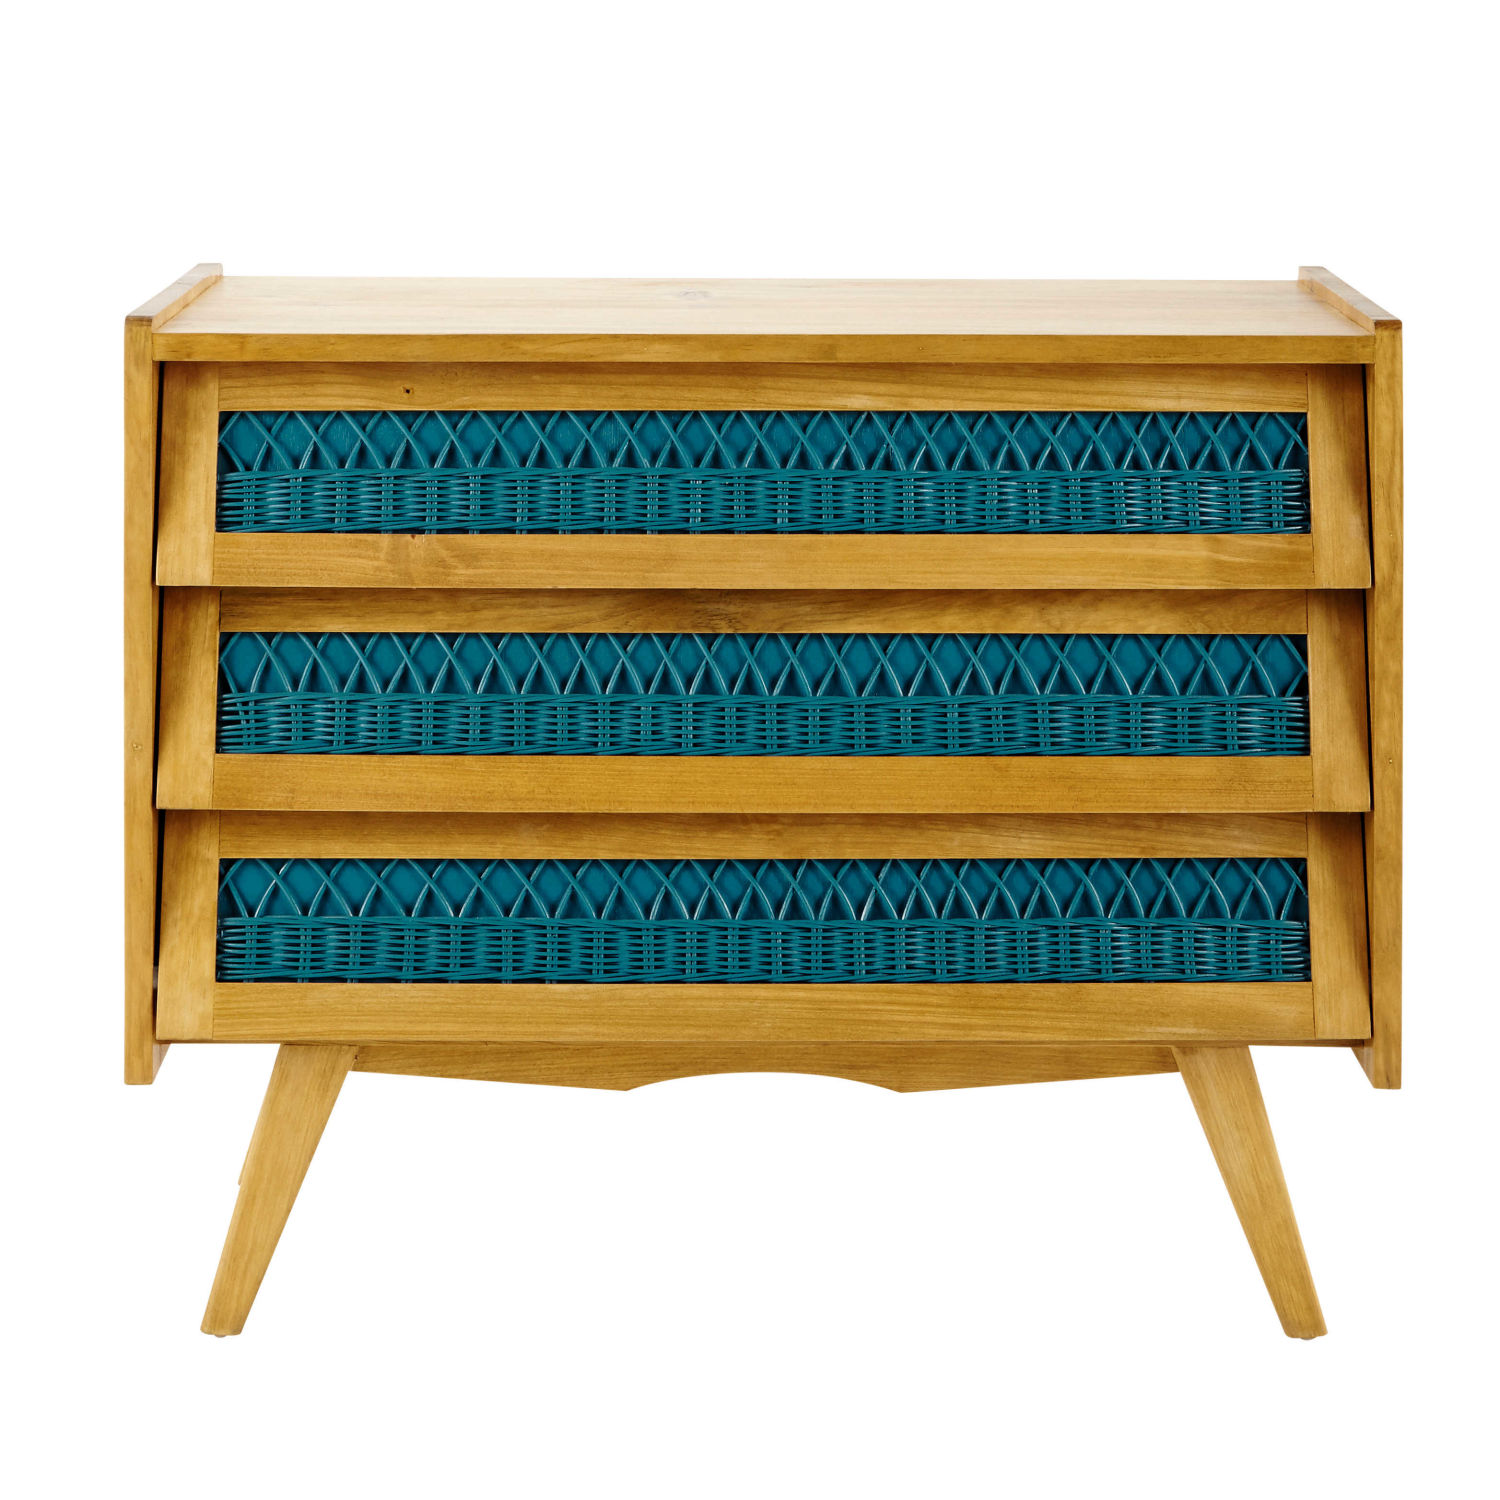 commode vintage en bois et rotin turquoise l 91 cm maisons du monde. Black Bedroom Furniture Sets. Home Design Ideas